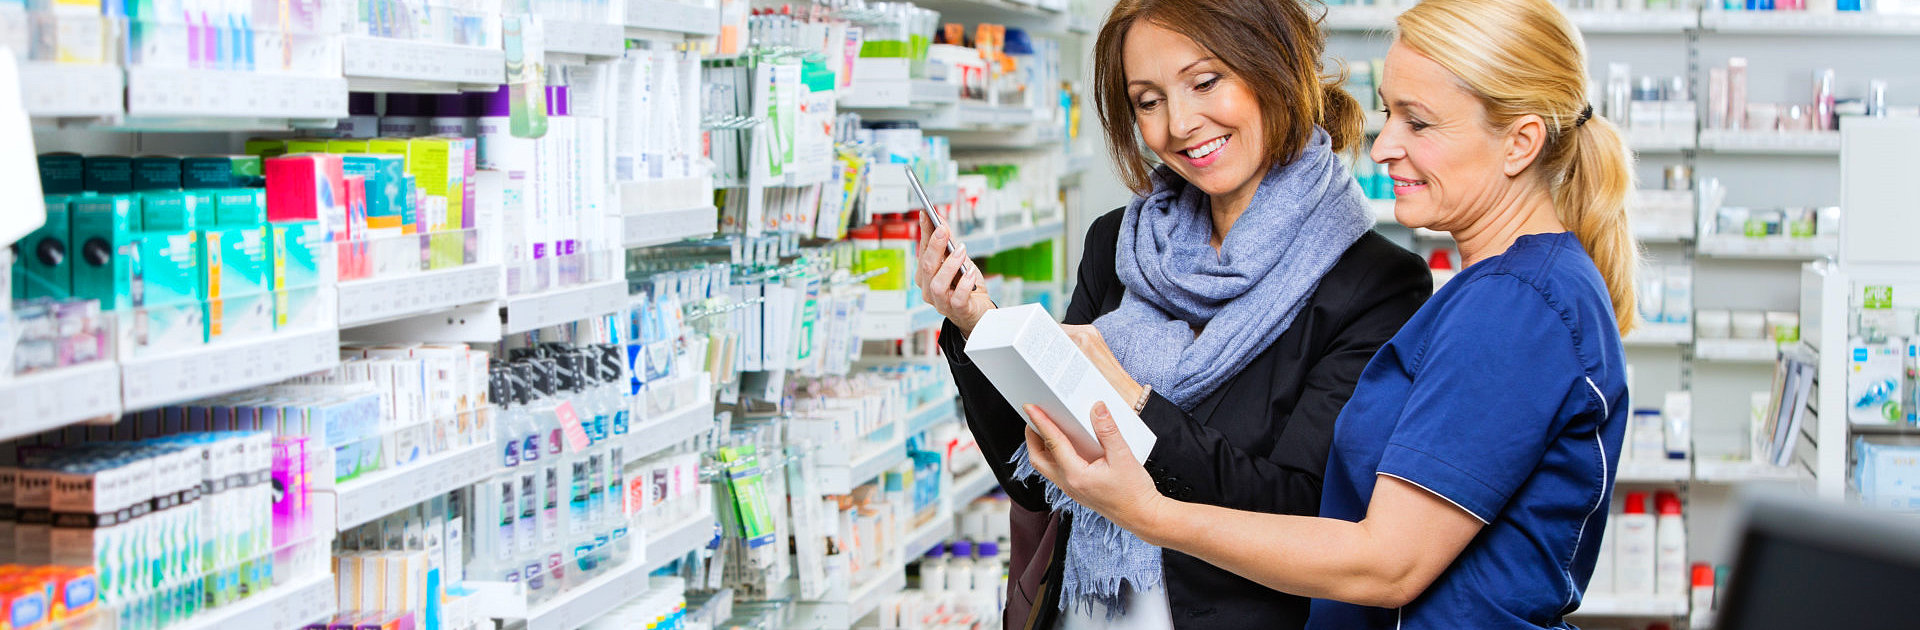 pharmacist and a customer looking at a medicine